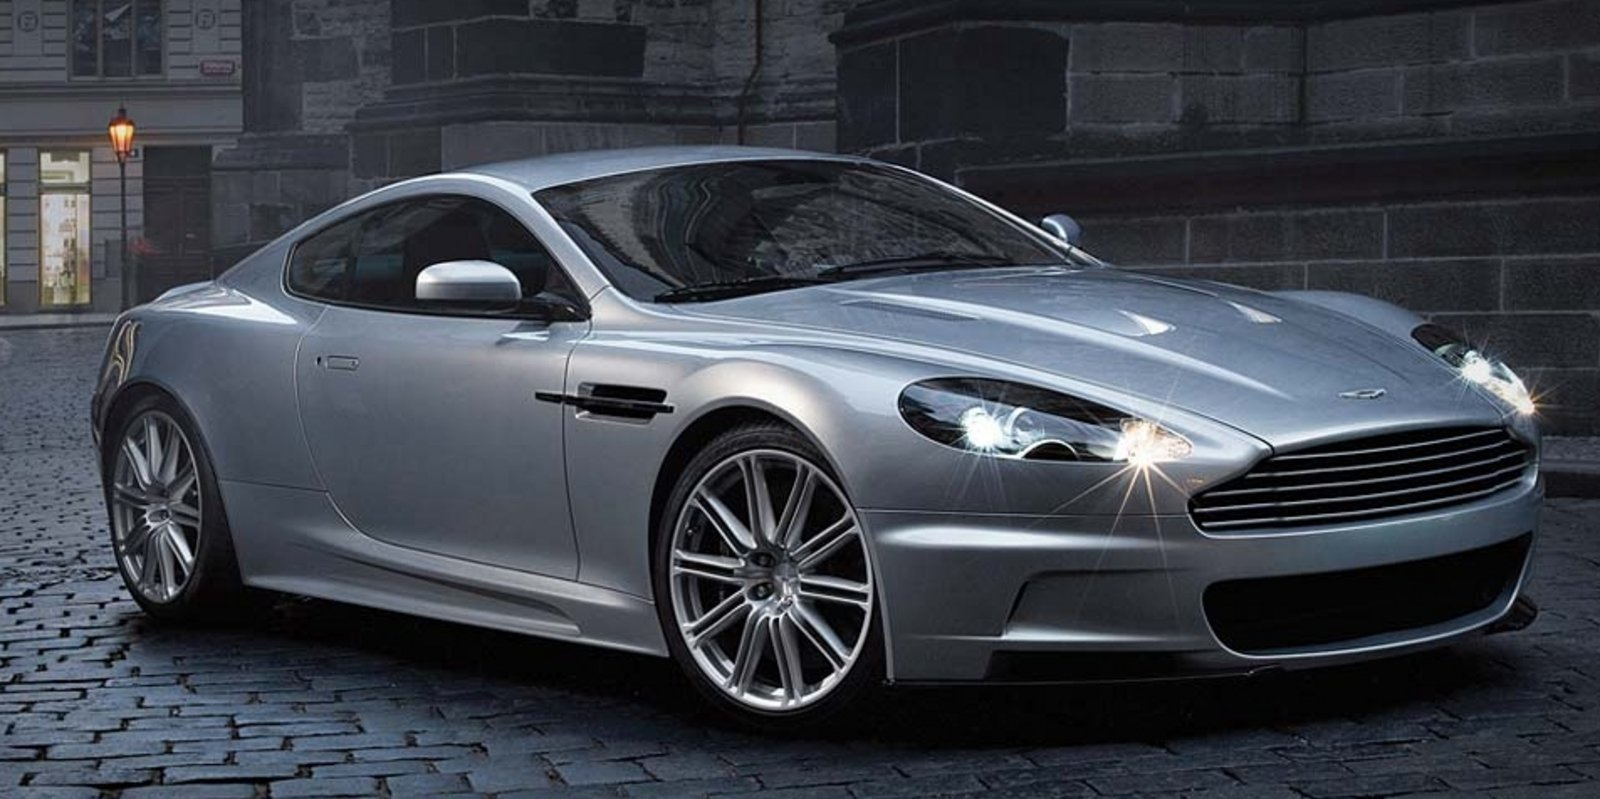 2012 aston martin dbs coupe review top speed. Black Bedroom Furniture Sets. Home Design Ideas